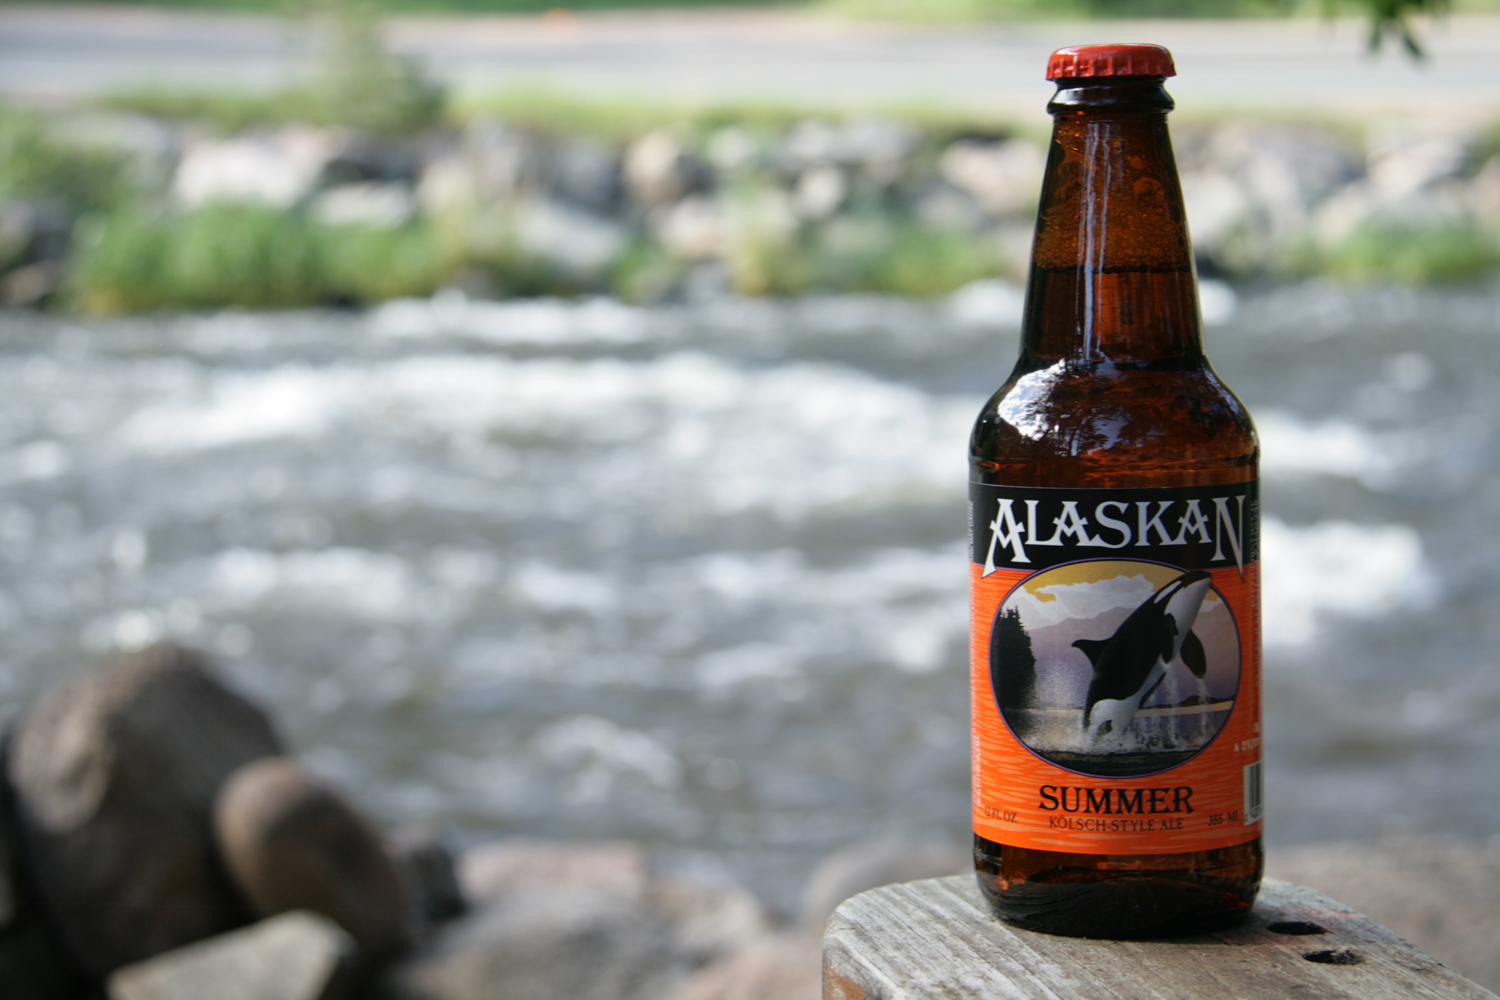 Alaskan summer seasonal beer is very drinkable.